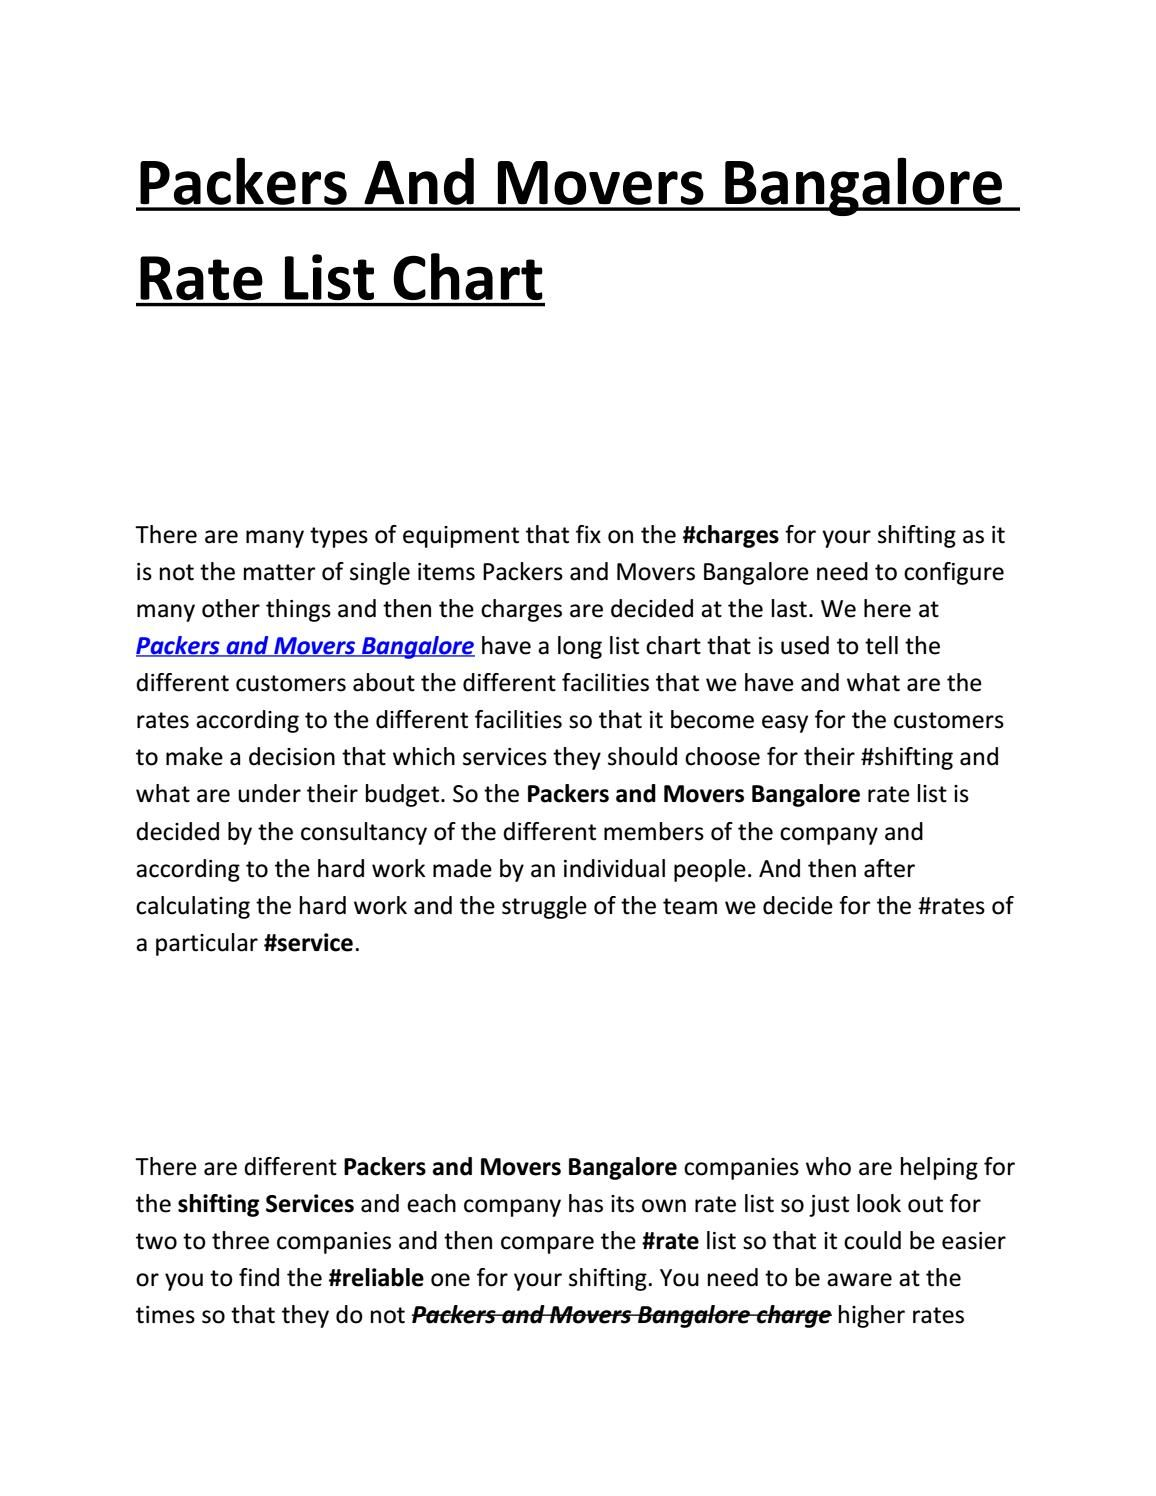 Packers And Movers Bangalore Rate List Chart  Packers And Newspaper